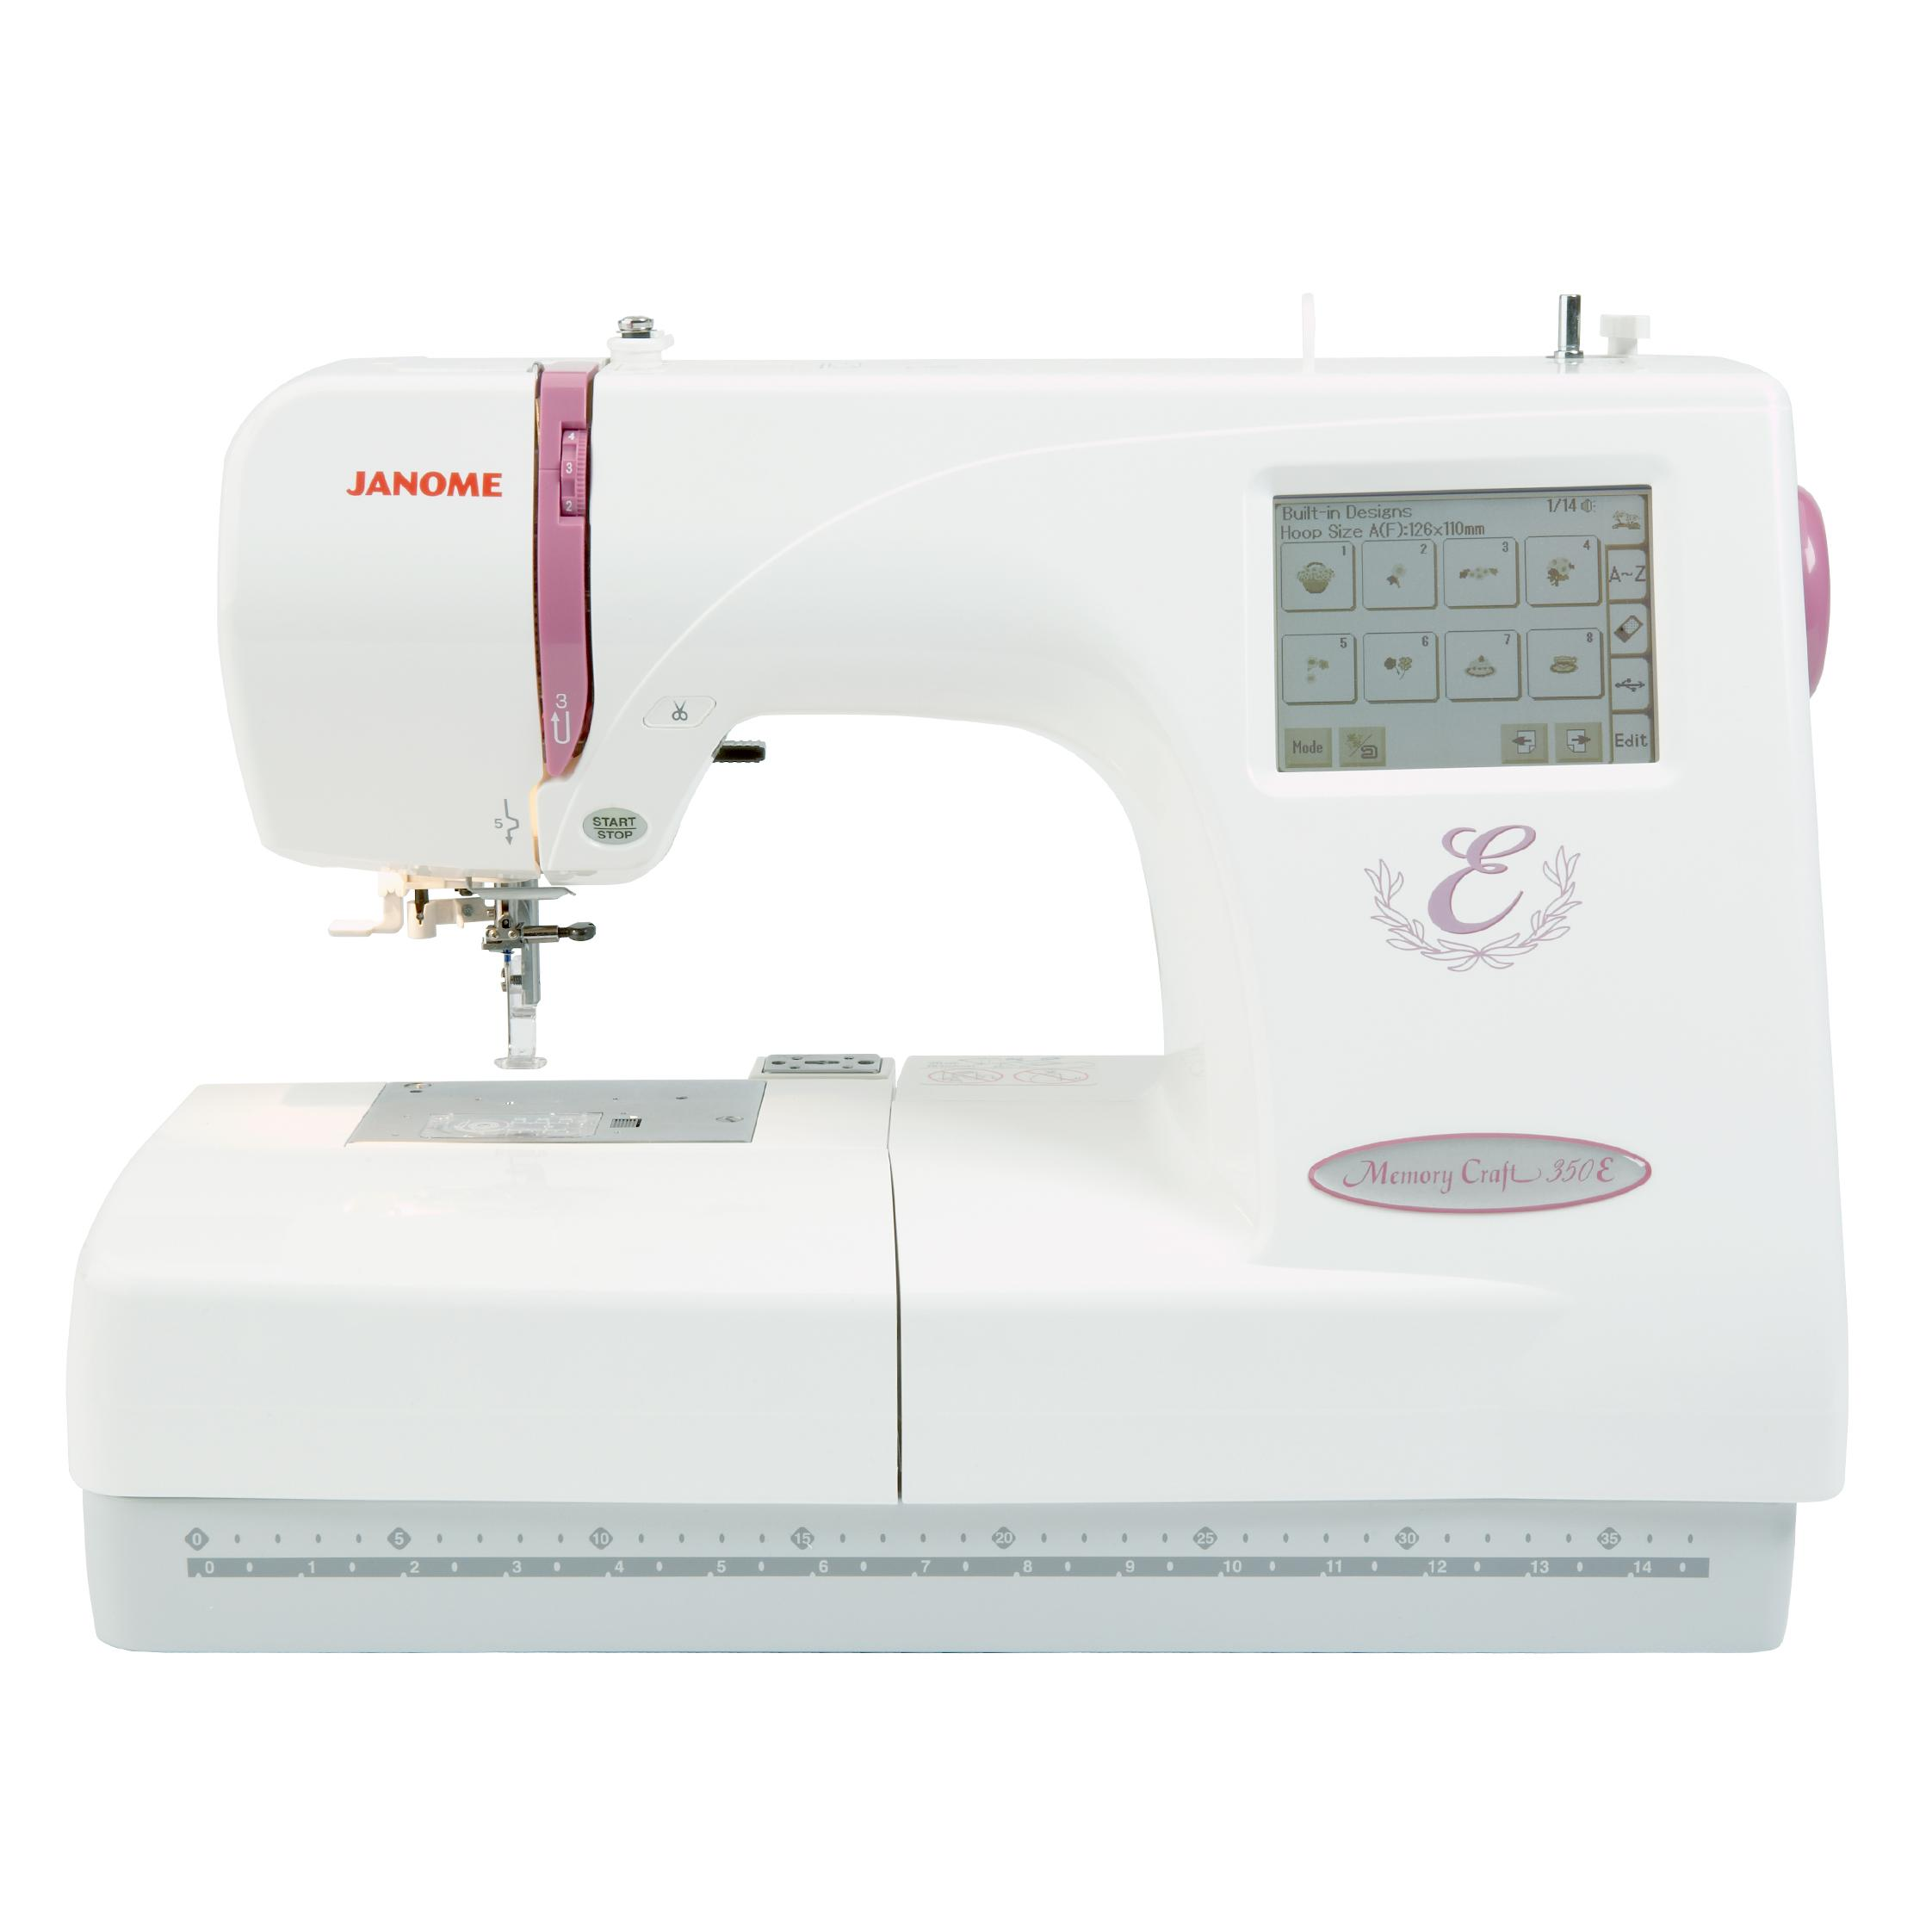 Janome memory craft 350e frank nutt sewing machines ltd for Janome memory craft 9500